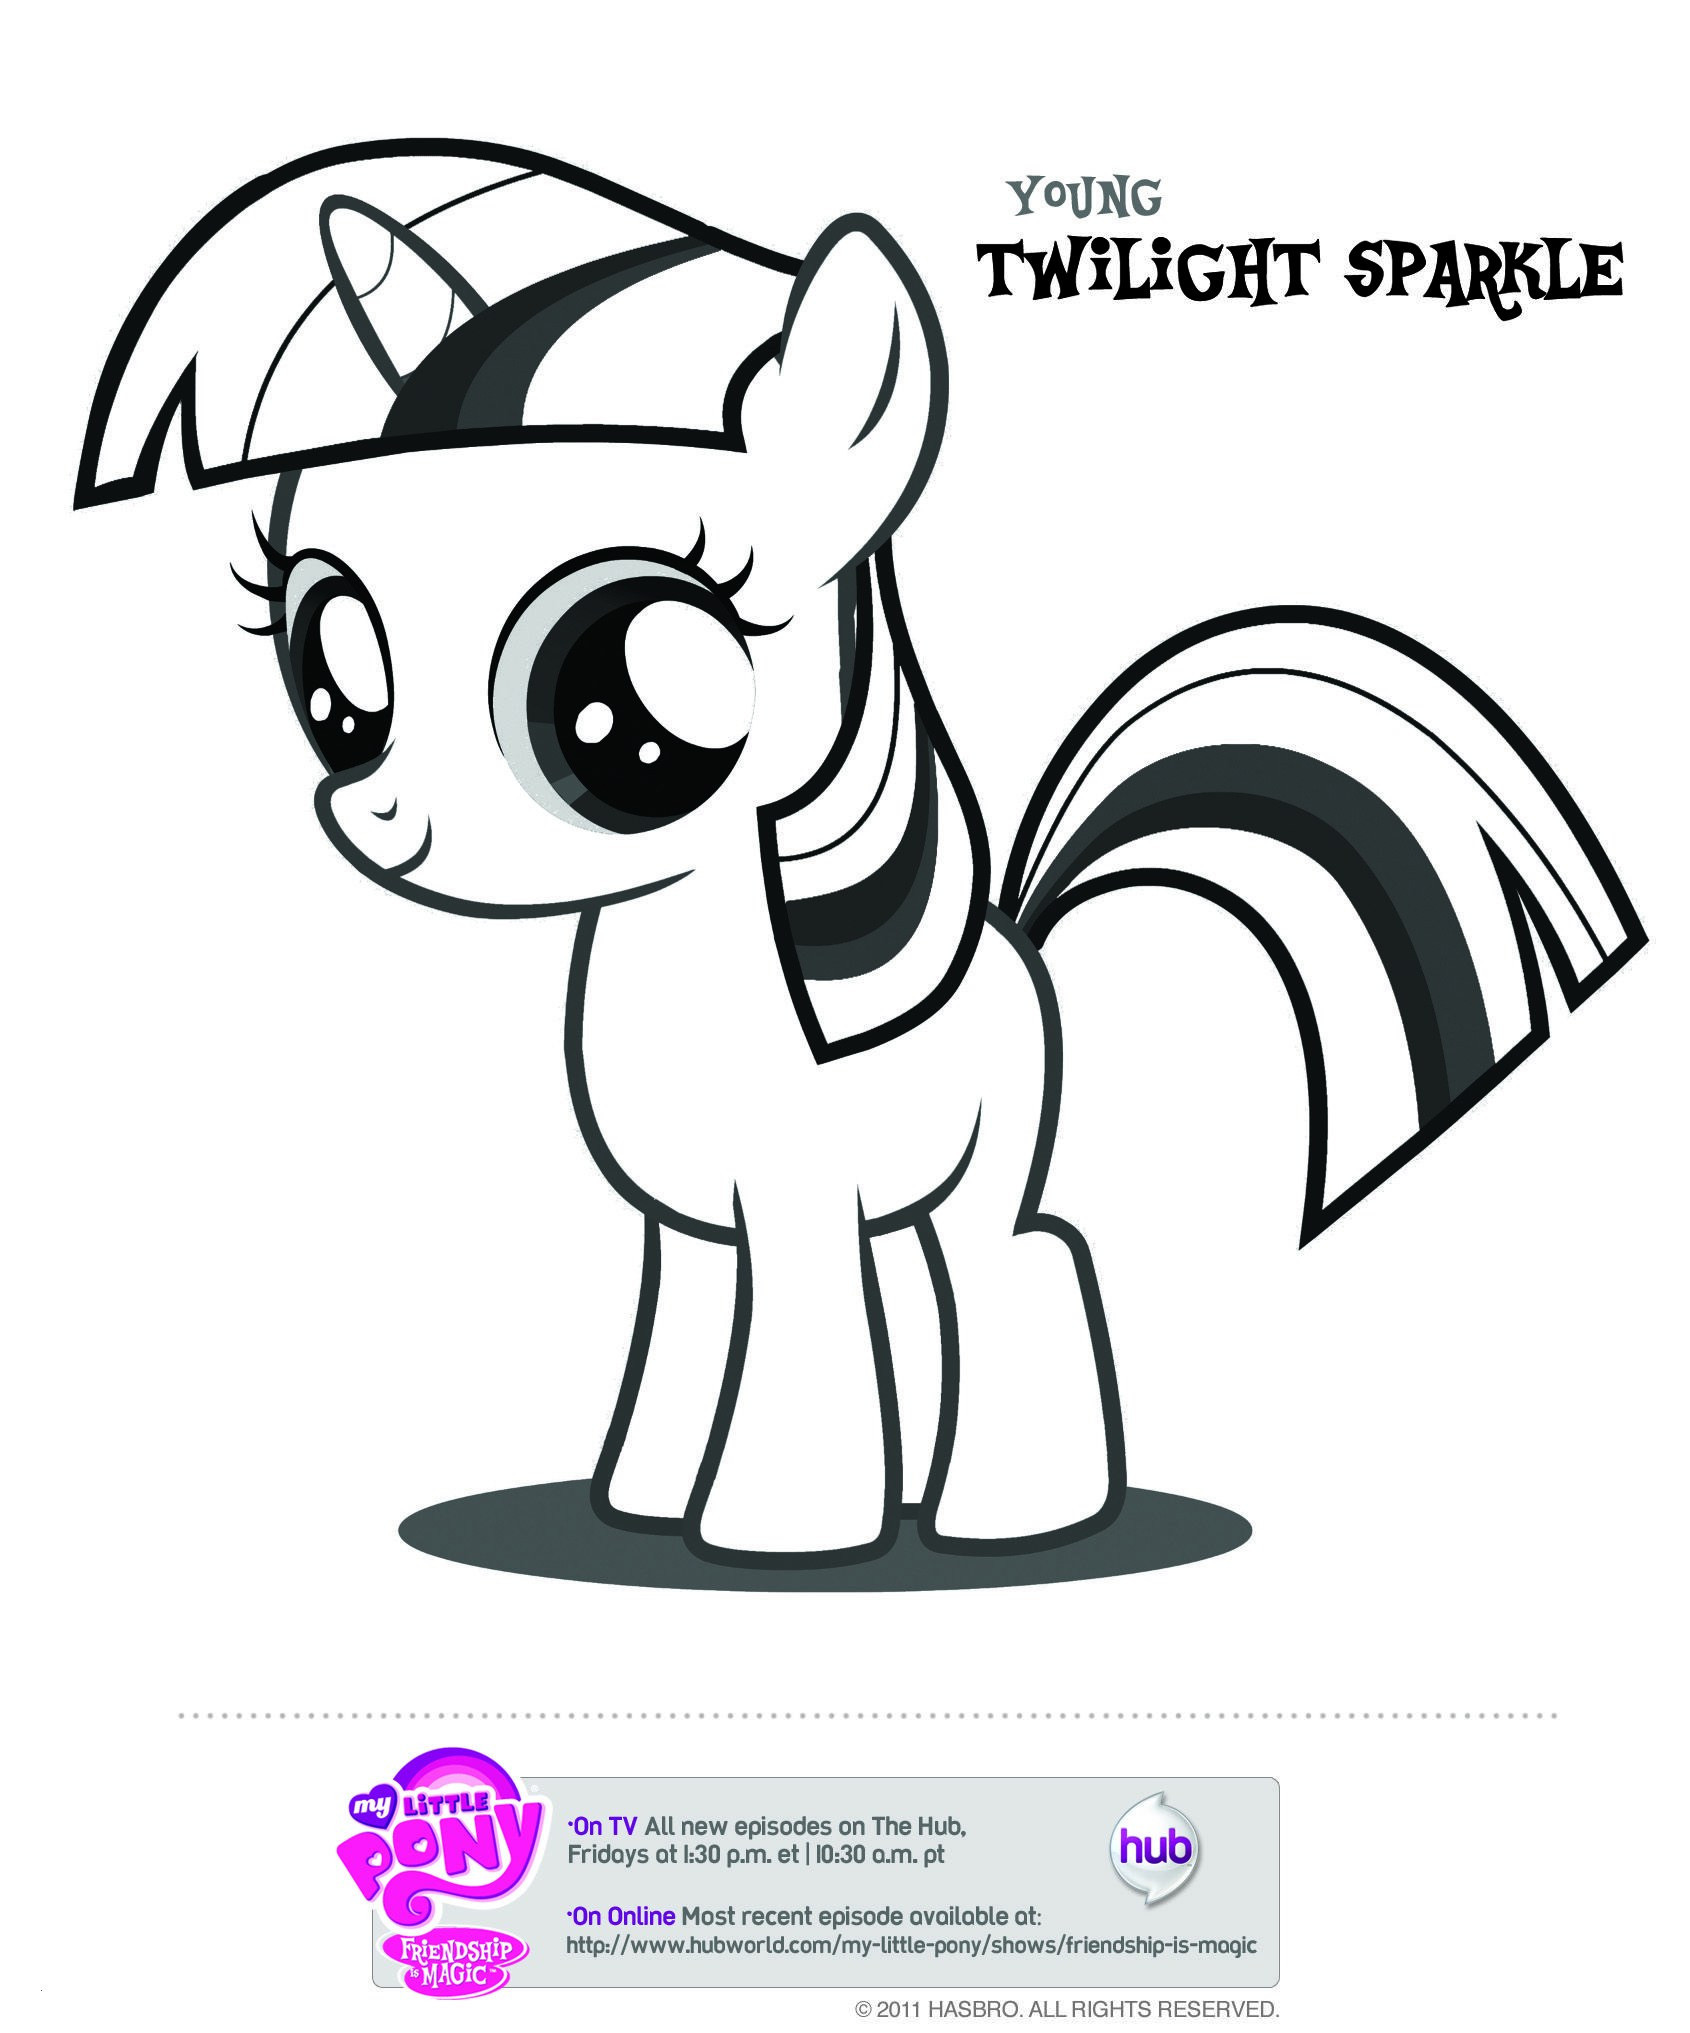 Ausmalbilder My Little Pony Equestria Inspirierend 40 My Little Pony Friendship is Magic Ausmalbilder Scoredatscore Stock